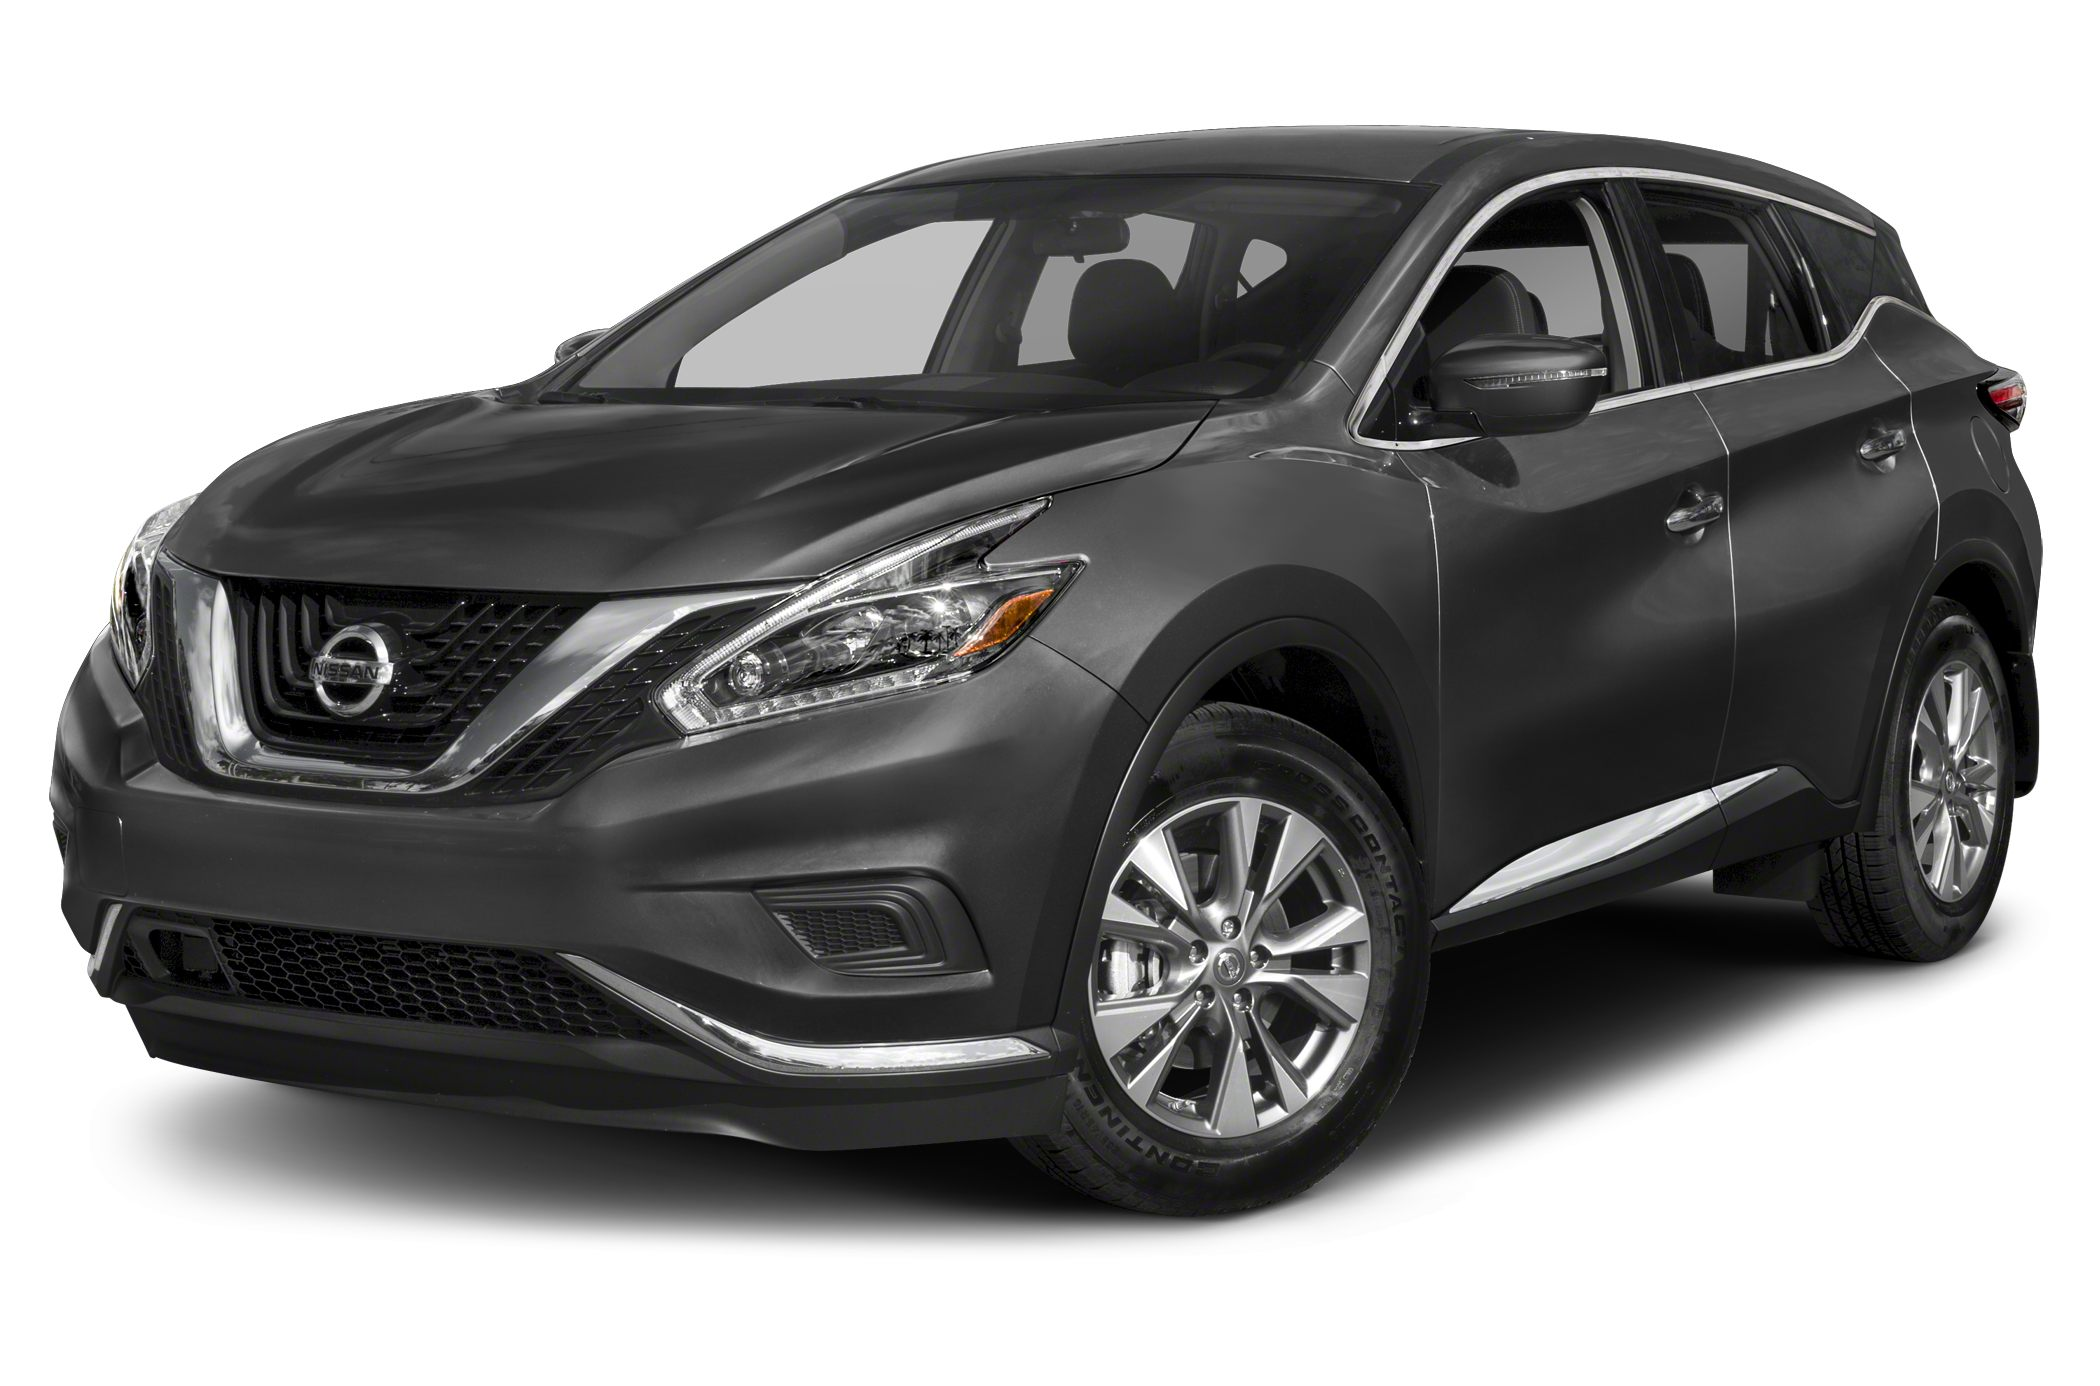 Acura Lease Deals >> 2018 Nissan Murano Deals, Prices, Incentives & Leases, Overview - CarsDirect